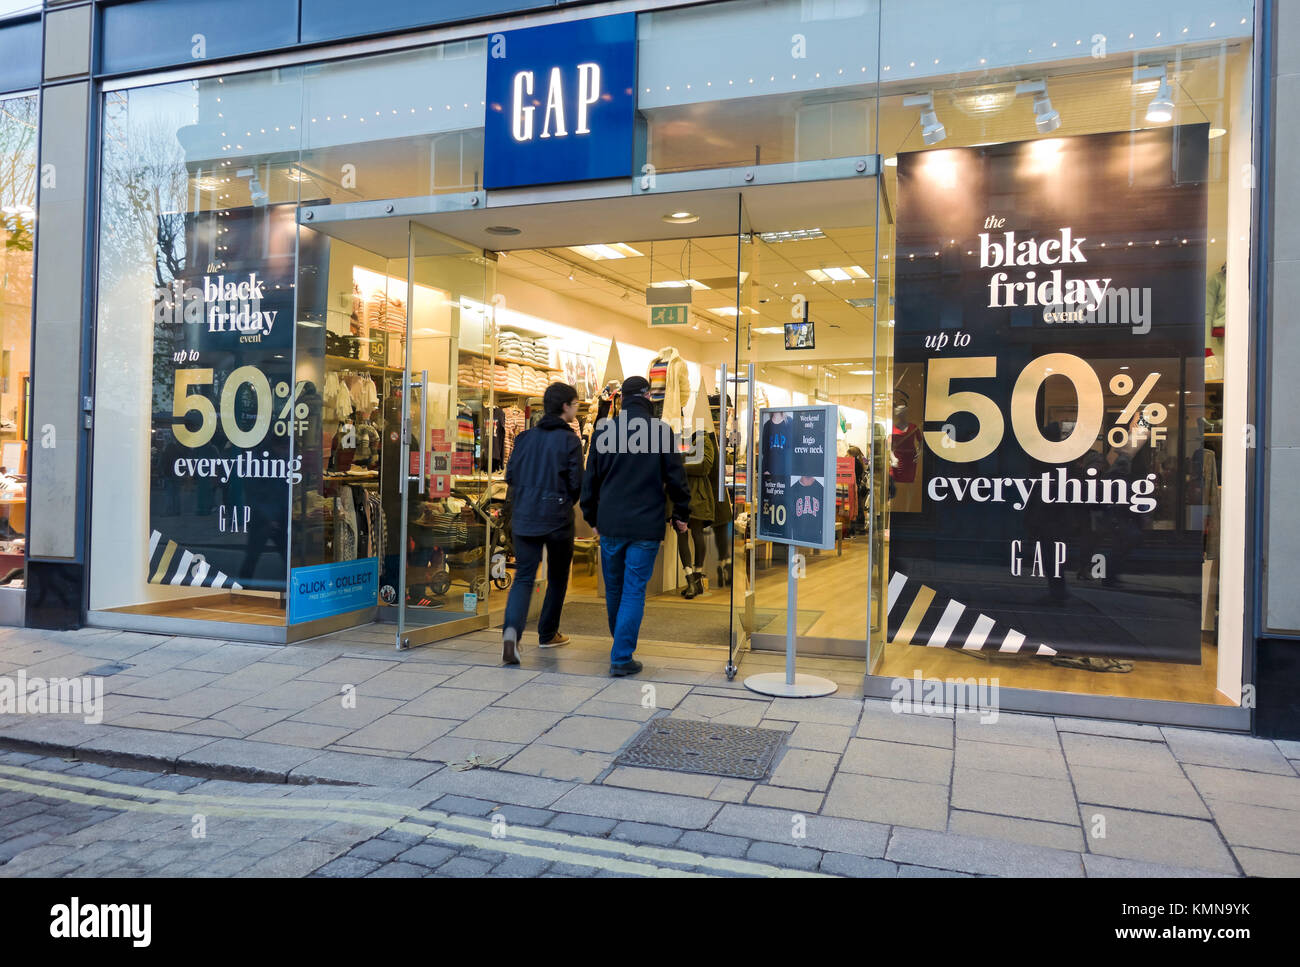 Black Friday signs on GAP shop store window England UK United Kingdom GB Great Britain - Stock Image